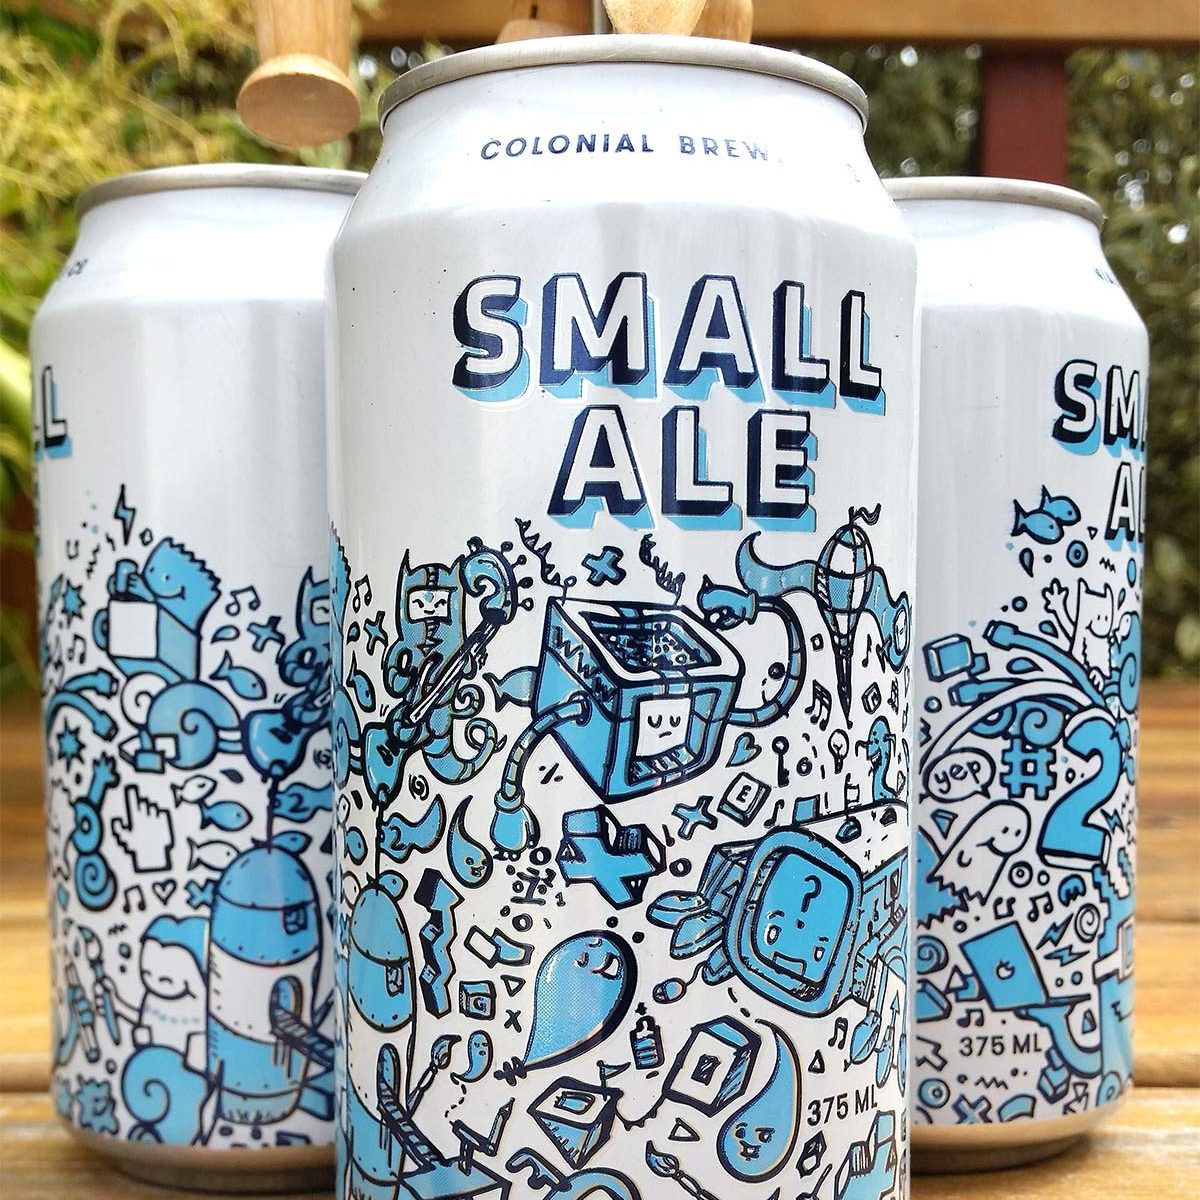 colonial beer can small ale collaboration